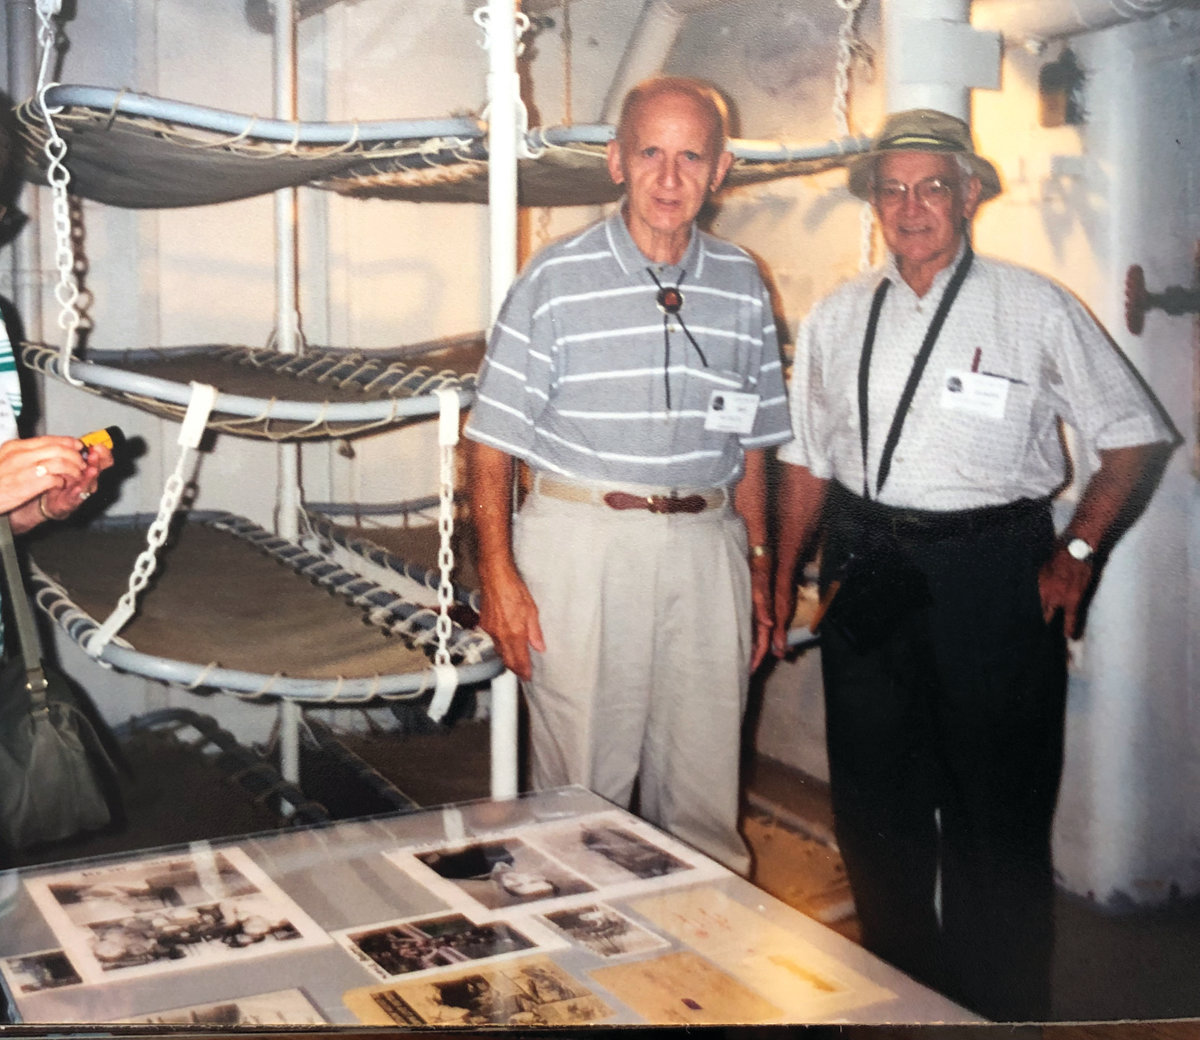 REVISITING: Ray Raiche visits a LSM similar to the one he helped crew during the war, alongside a shipmate he served with, Claude Clement.